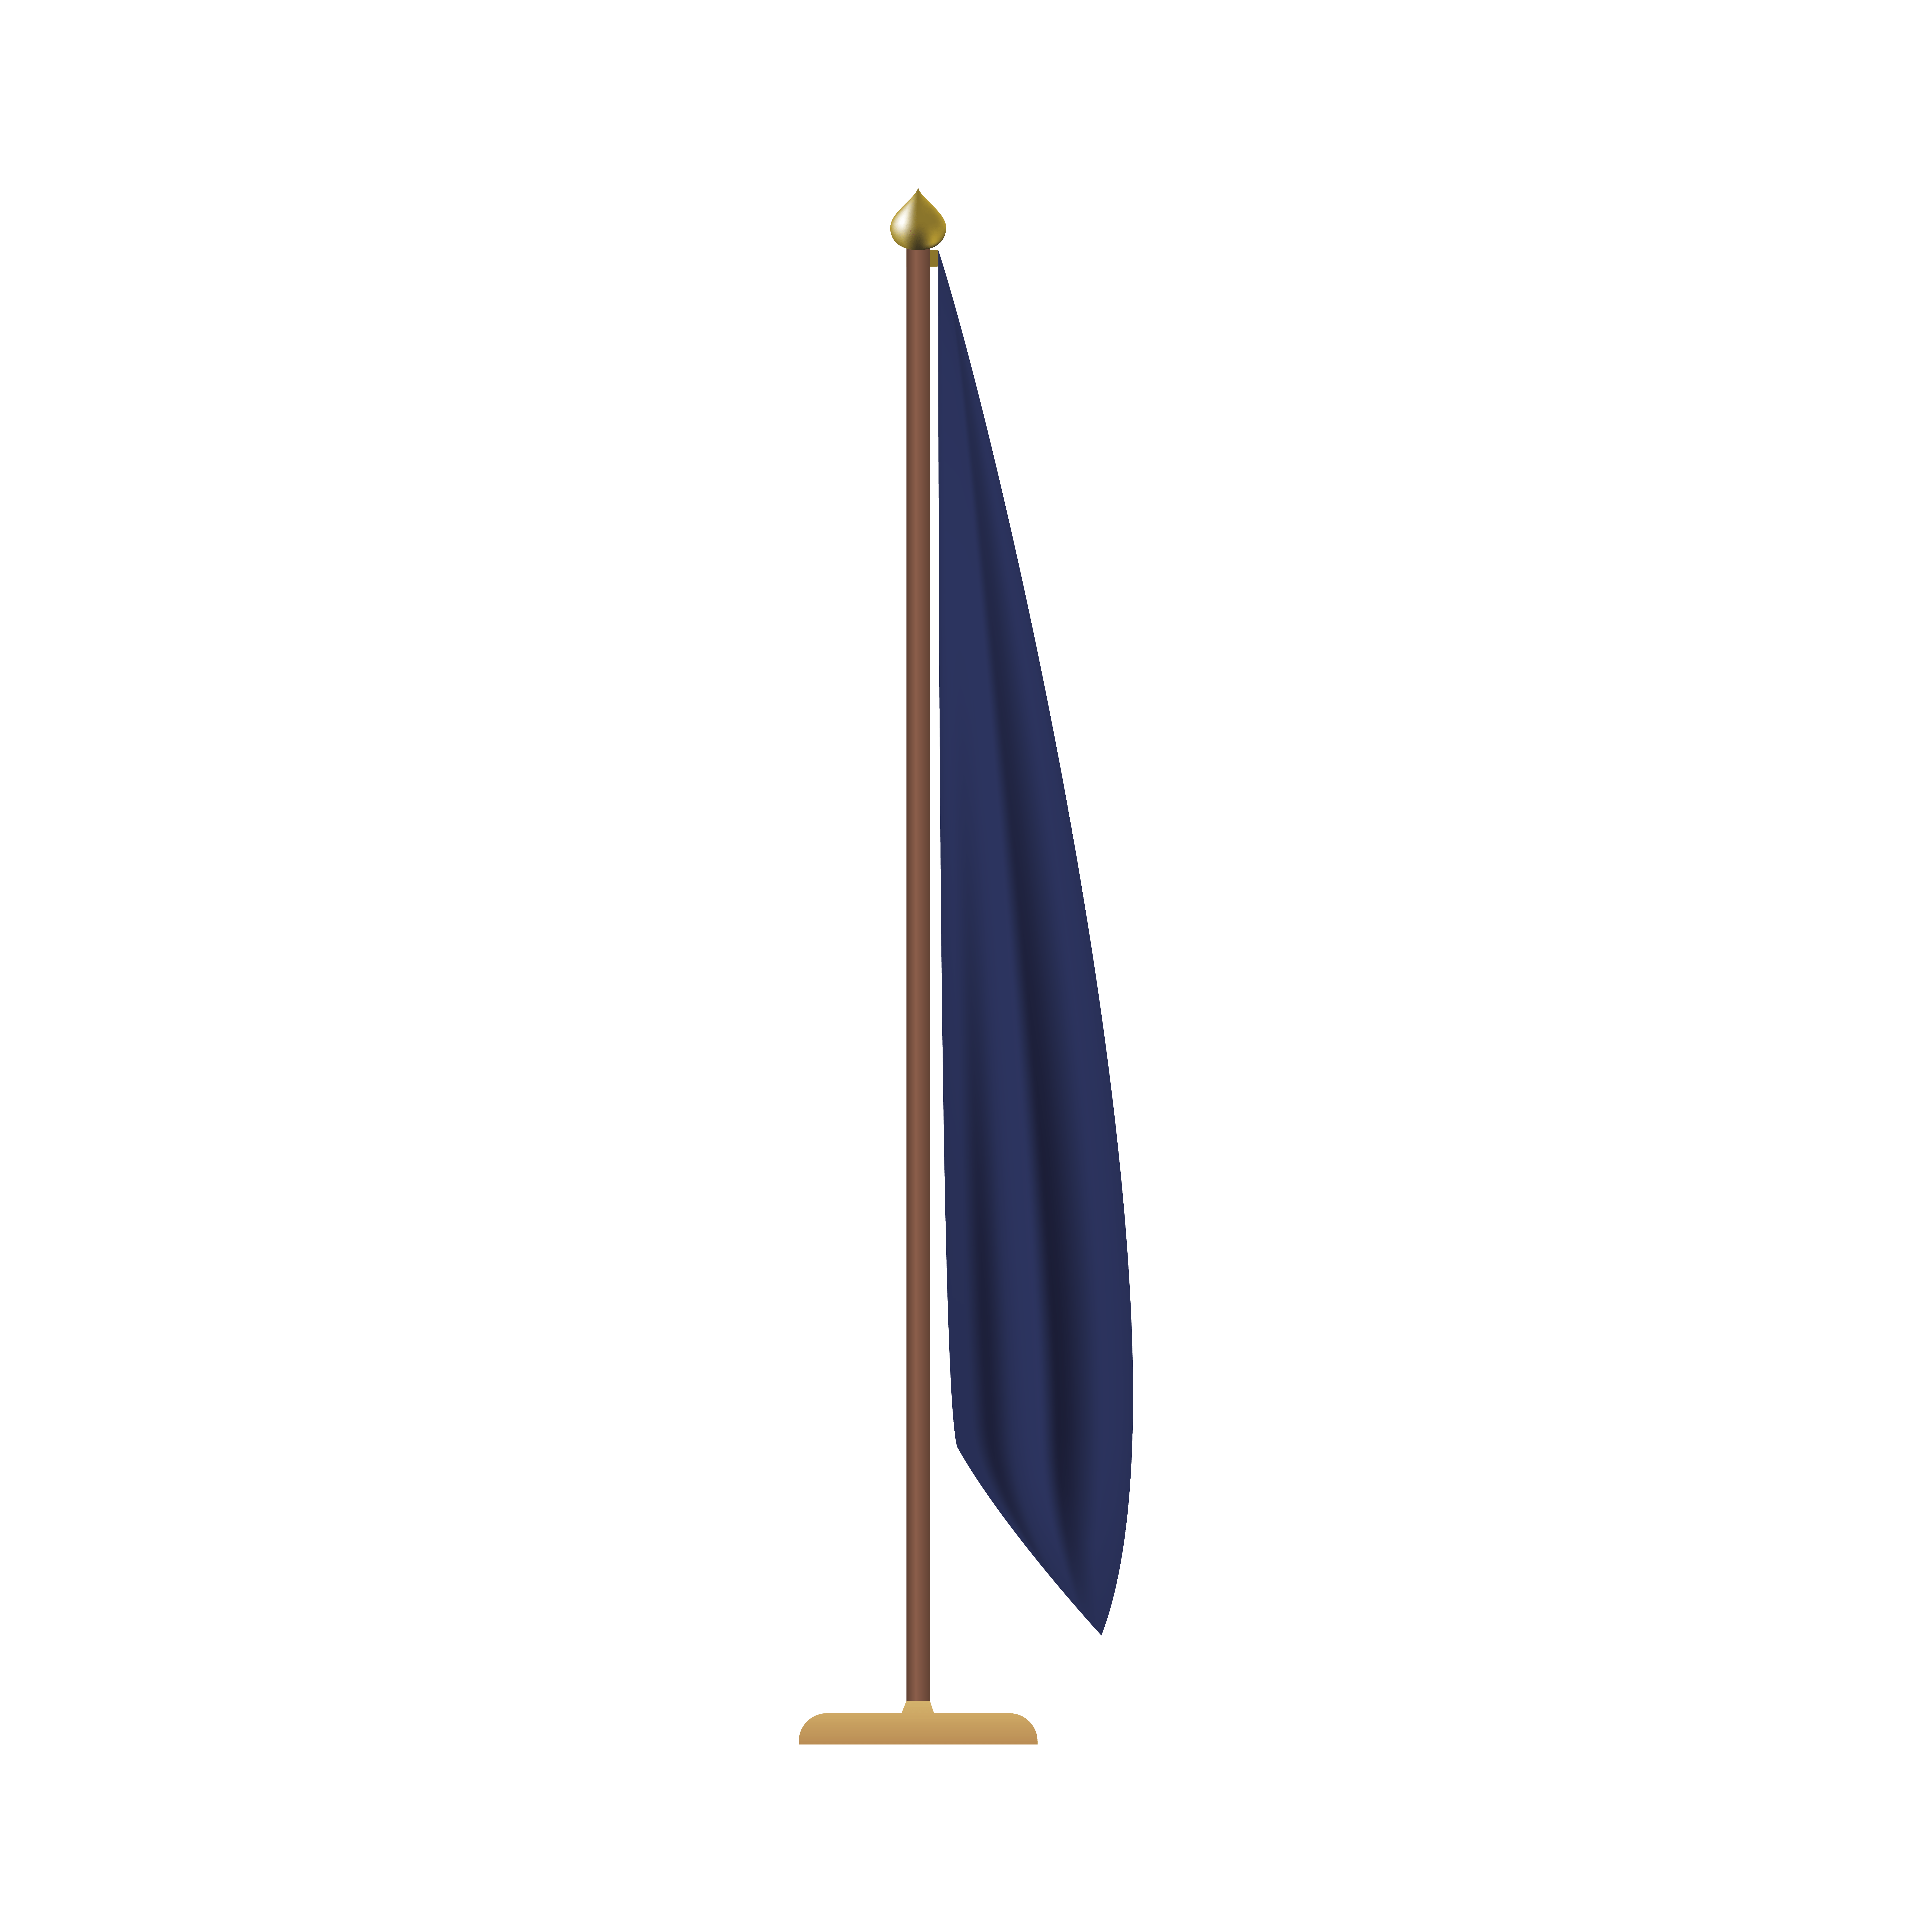 Ceremonial Poles and Flags